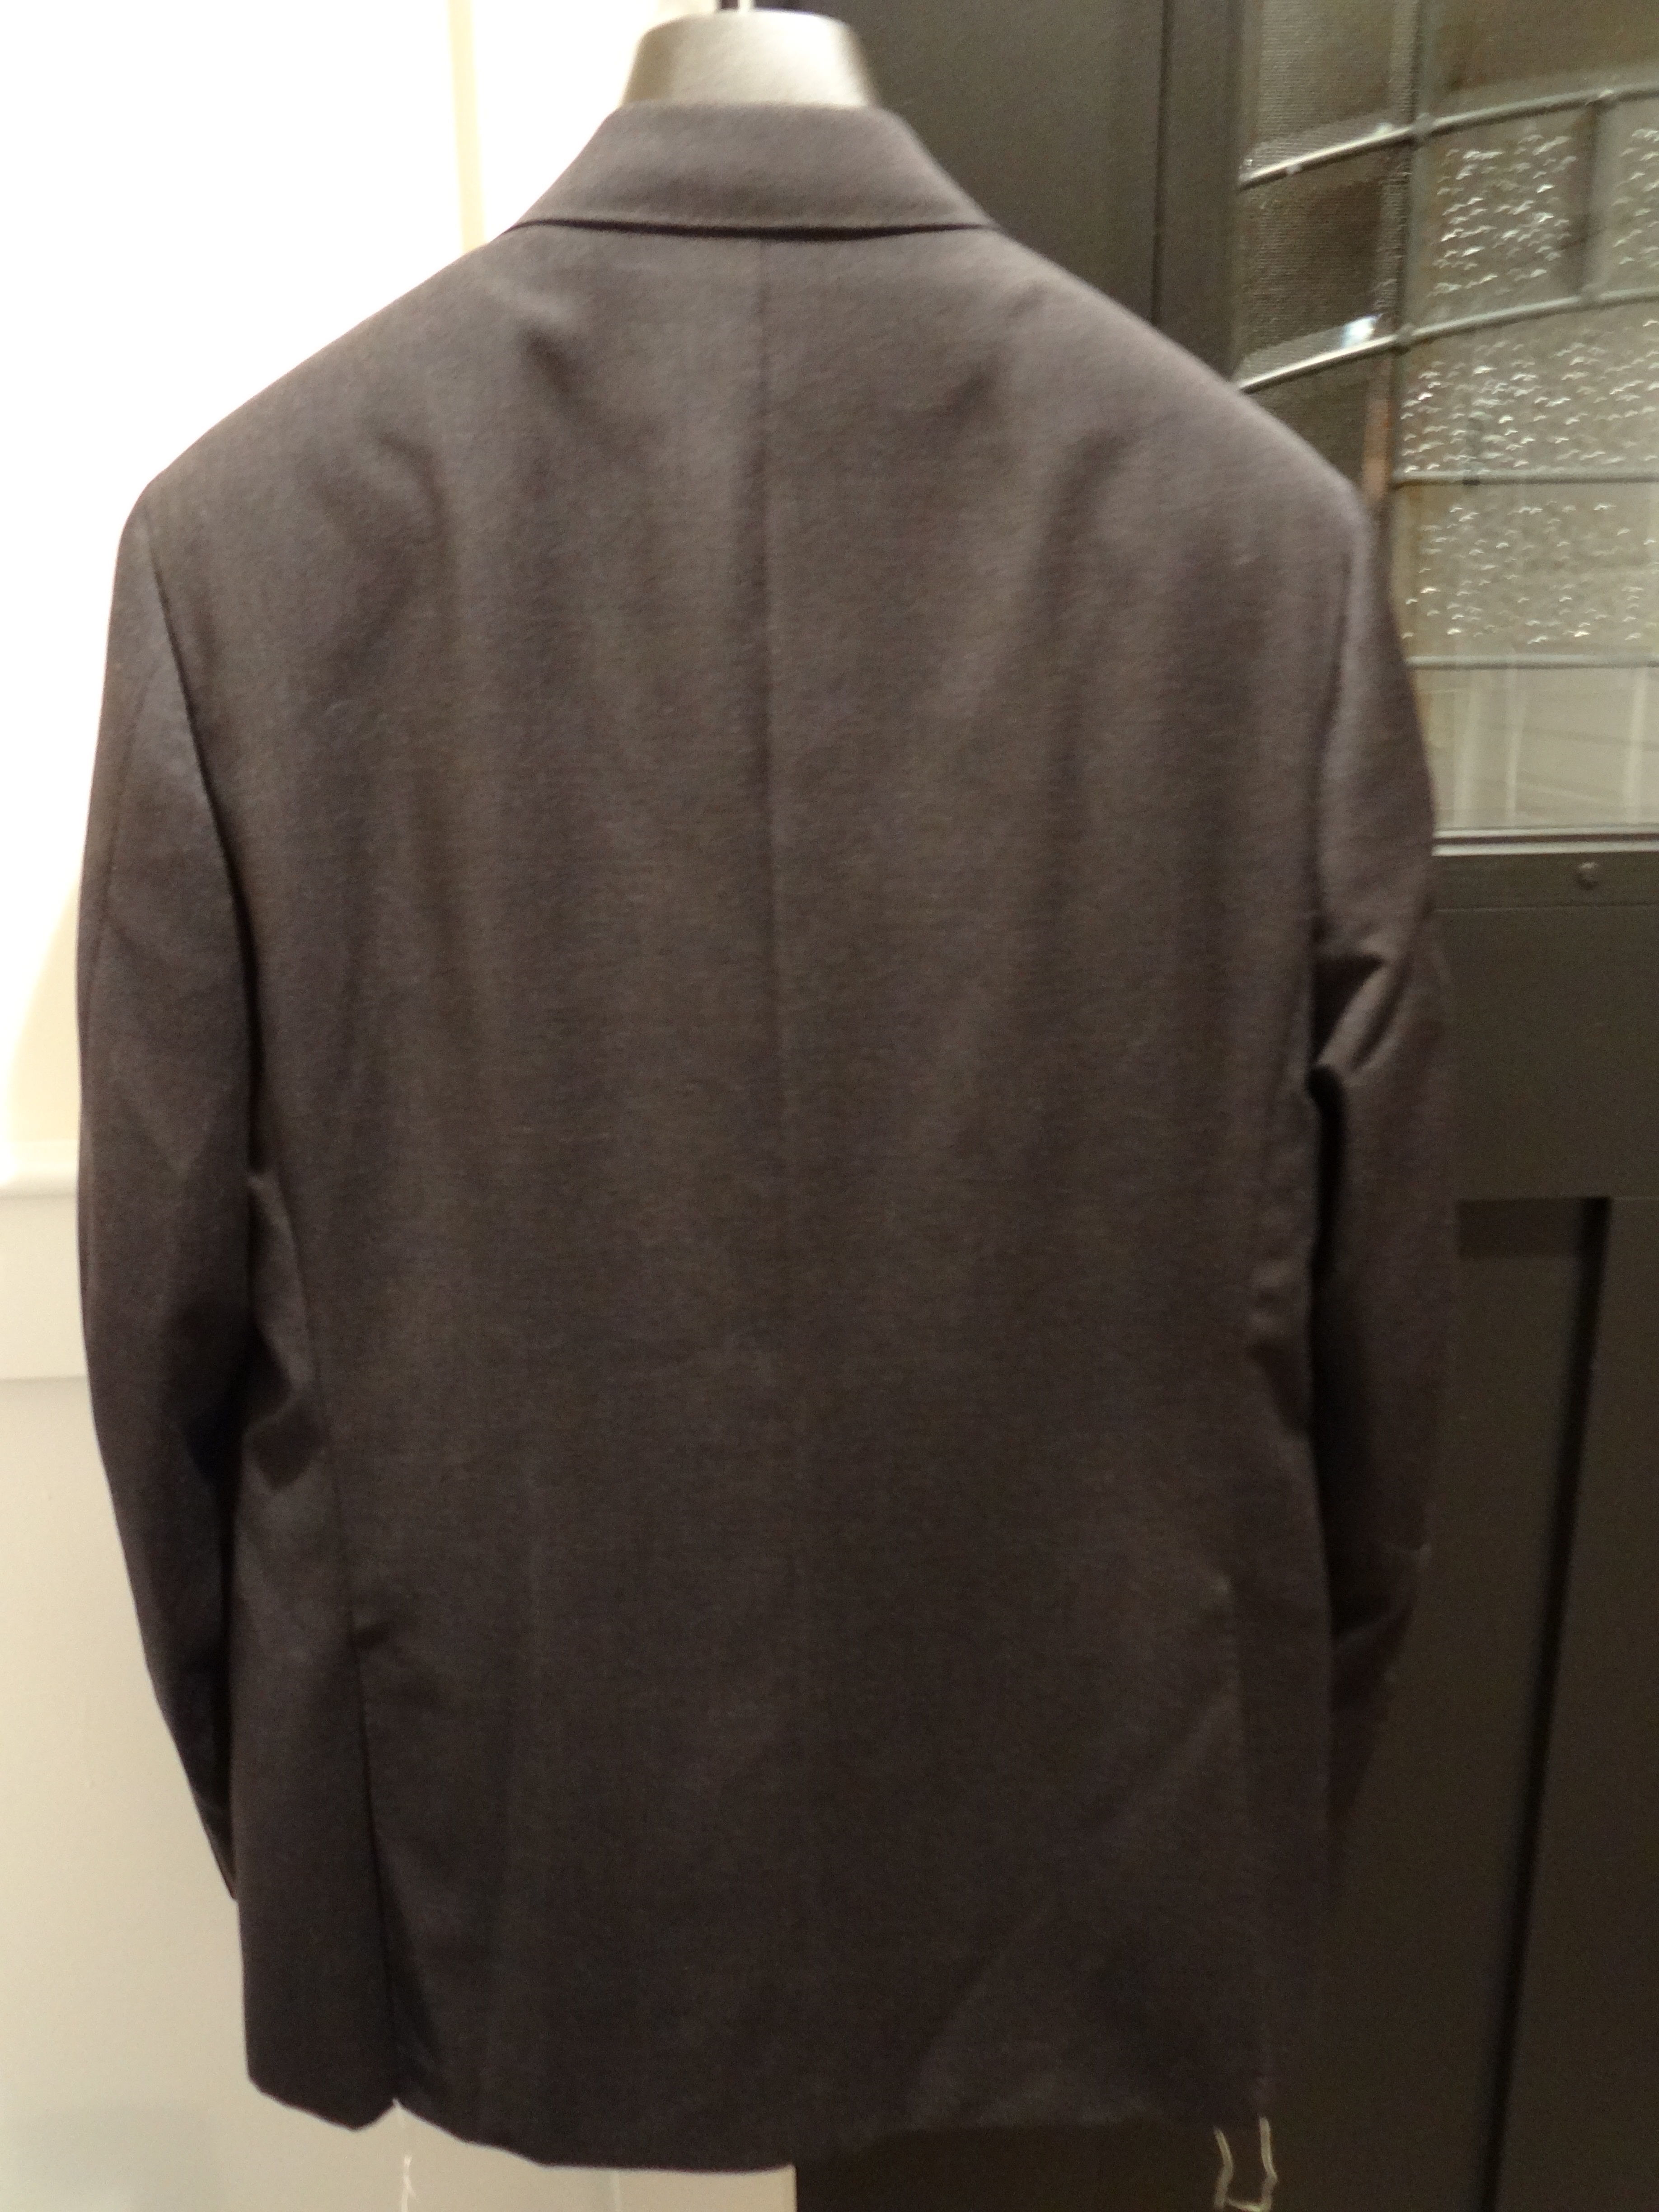 jreigen's photos in NWT Band New Canali Solid Charcoal Gray Suit 50R / 40R